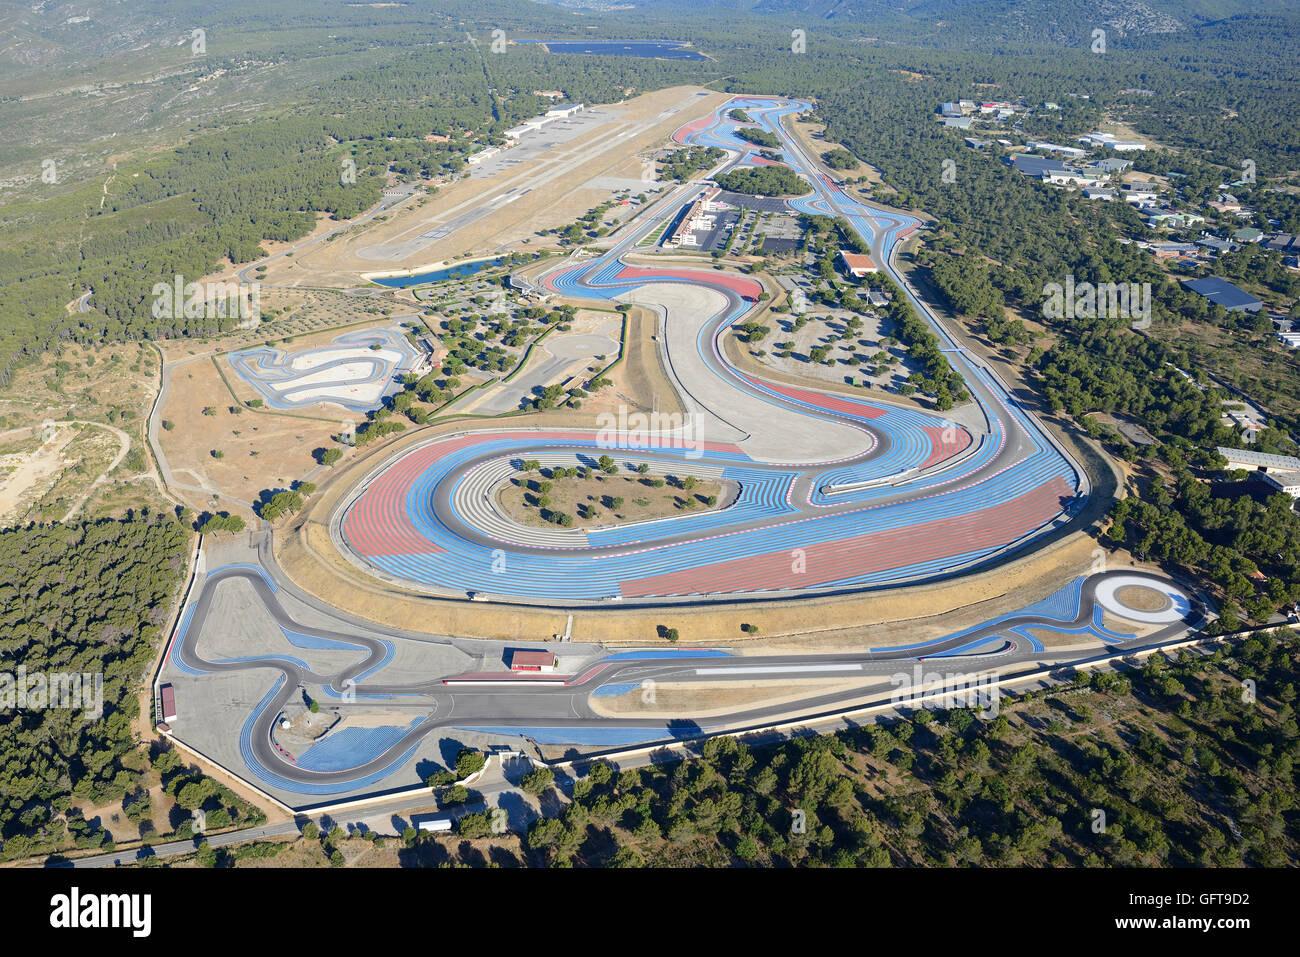 le castellet race track aka paul ricard race track aerial view le stock photo 113016318 alamy. Black Bedroom Furniture Sets. Home Design Ideas